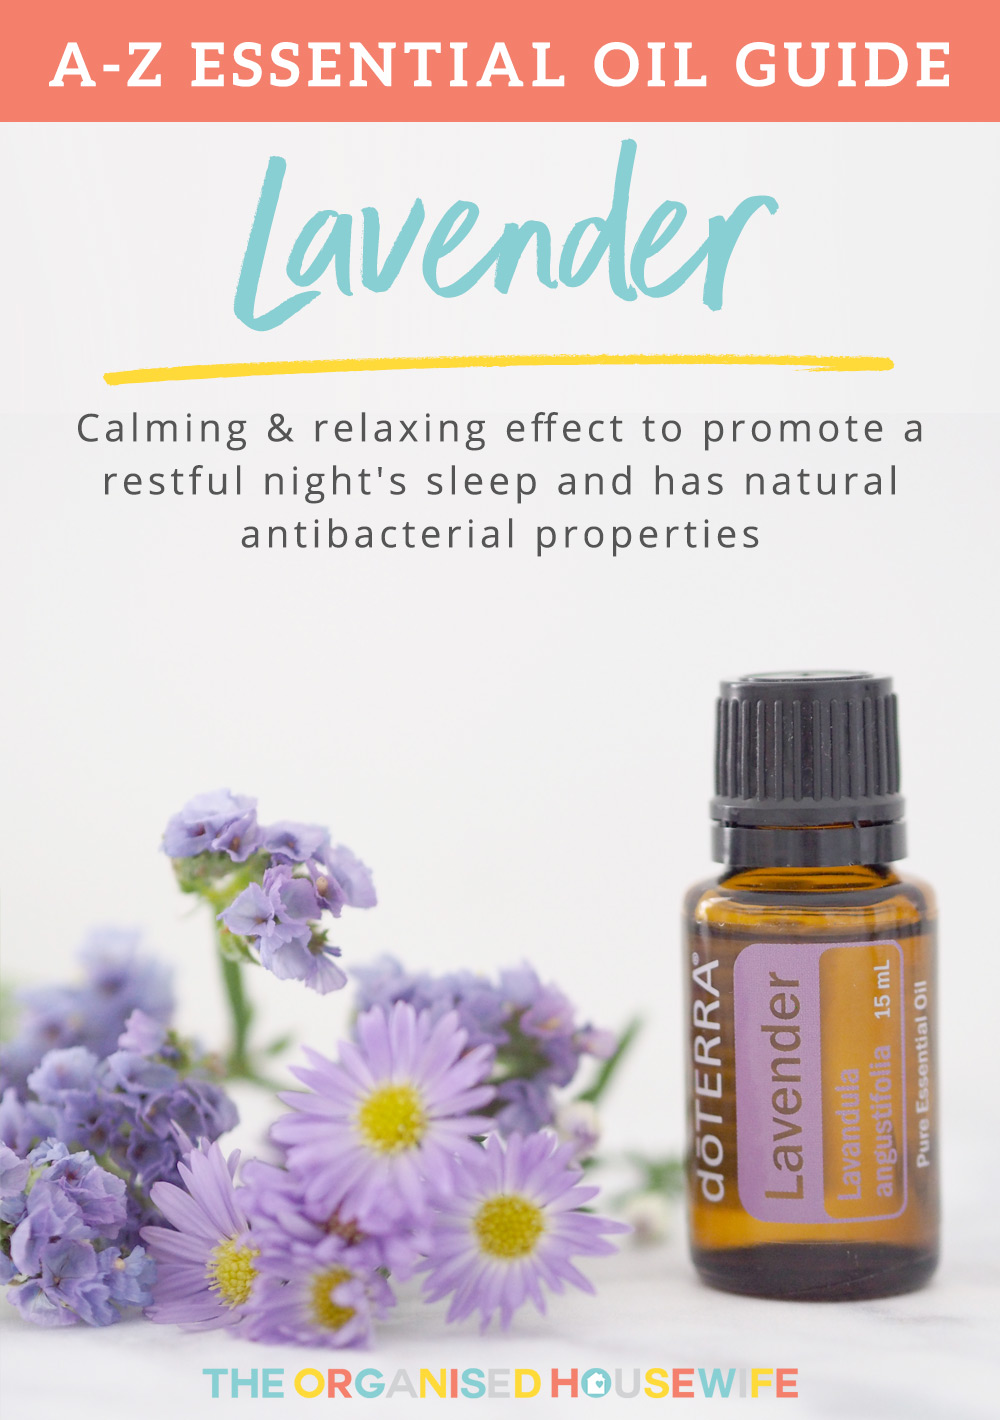 Lavender essential oil is one of the most versatile of all essential oils. With its relaxing effect to soothe and calm the body and mind to promote a restful night's sleep and reduces feelings of anxiety and restlessness. Along with its natural antibacterial properties it's a great item to have on hand for DIY cleaners.